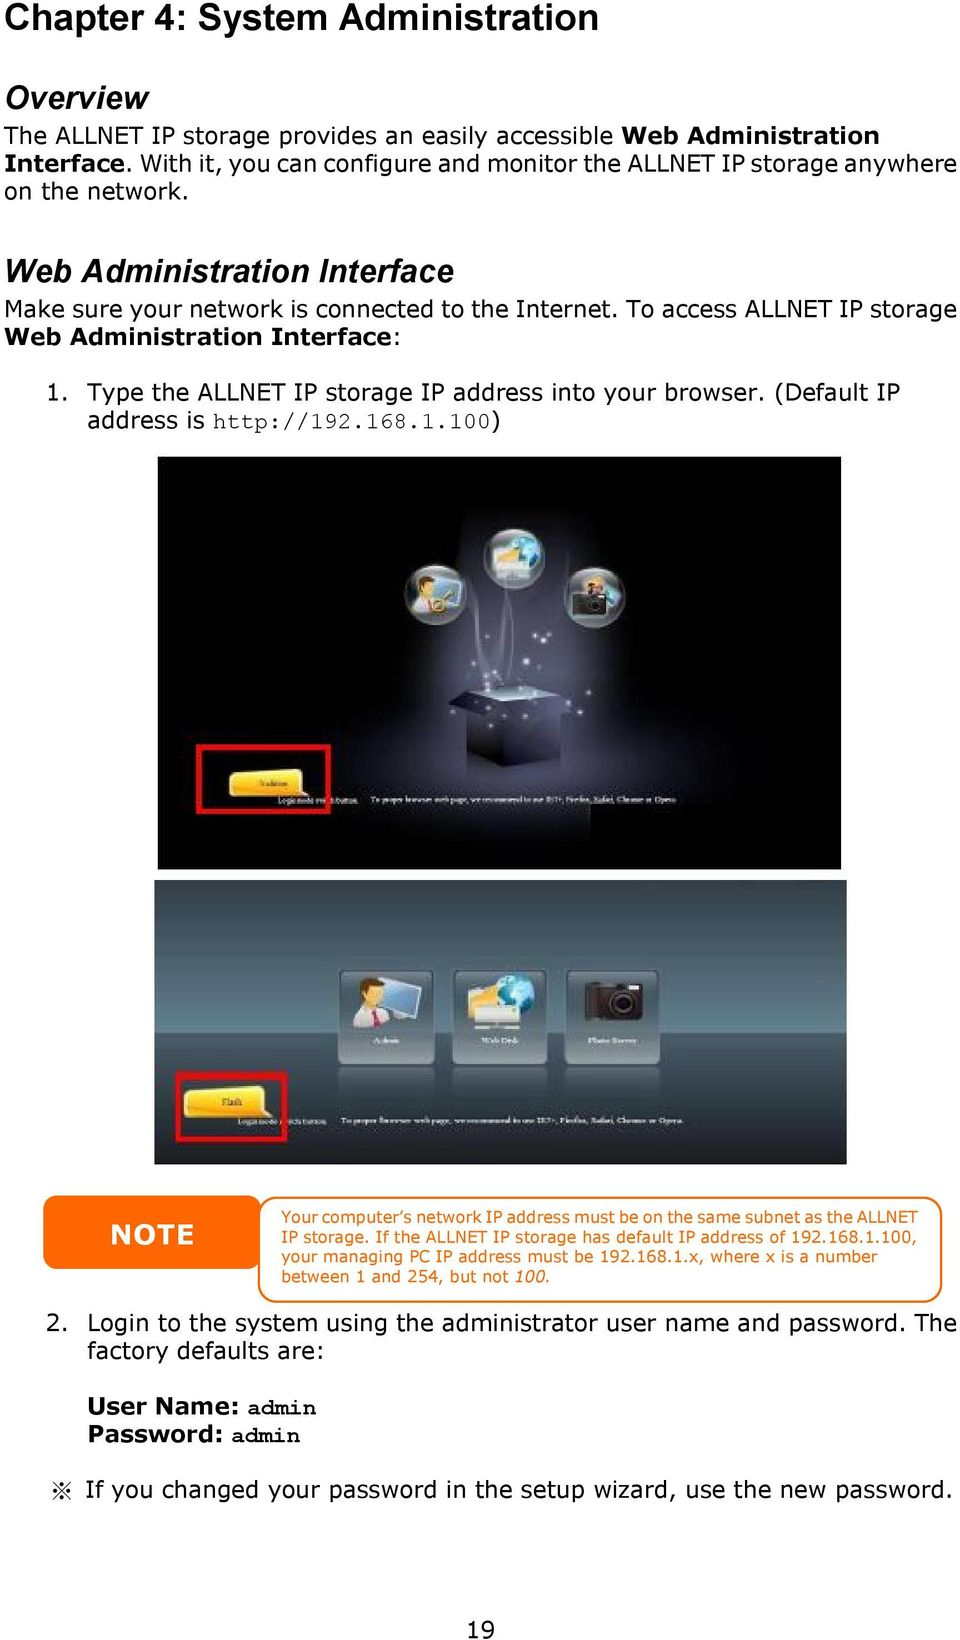 To access ALLNET IP storage Web Administration Interface: 1. Type the ALLNET IP storage IP address into your browser. (Default IP address is http://192.168.1.100) NOTE Your computer s network IP address must be on the same subnet as the ALLNET IP storage.